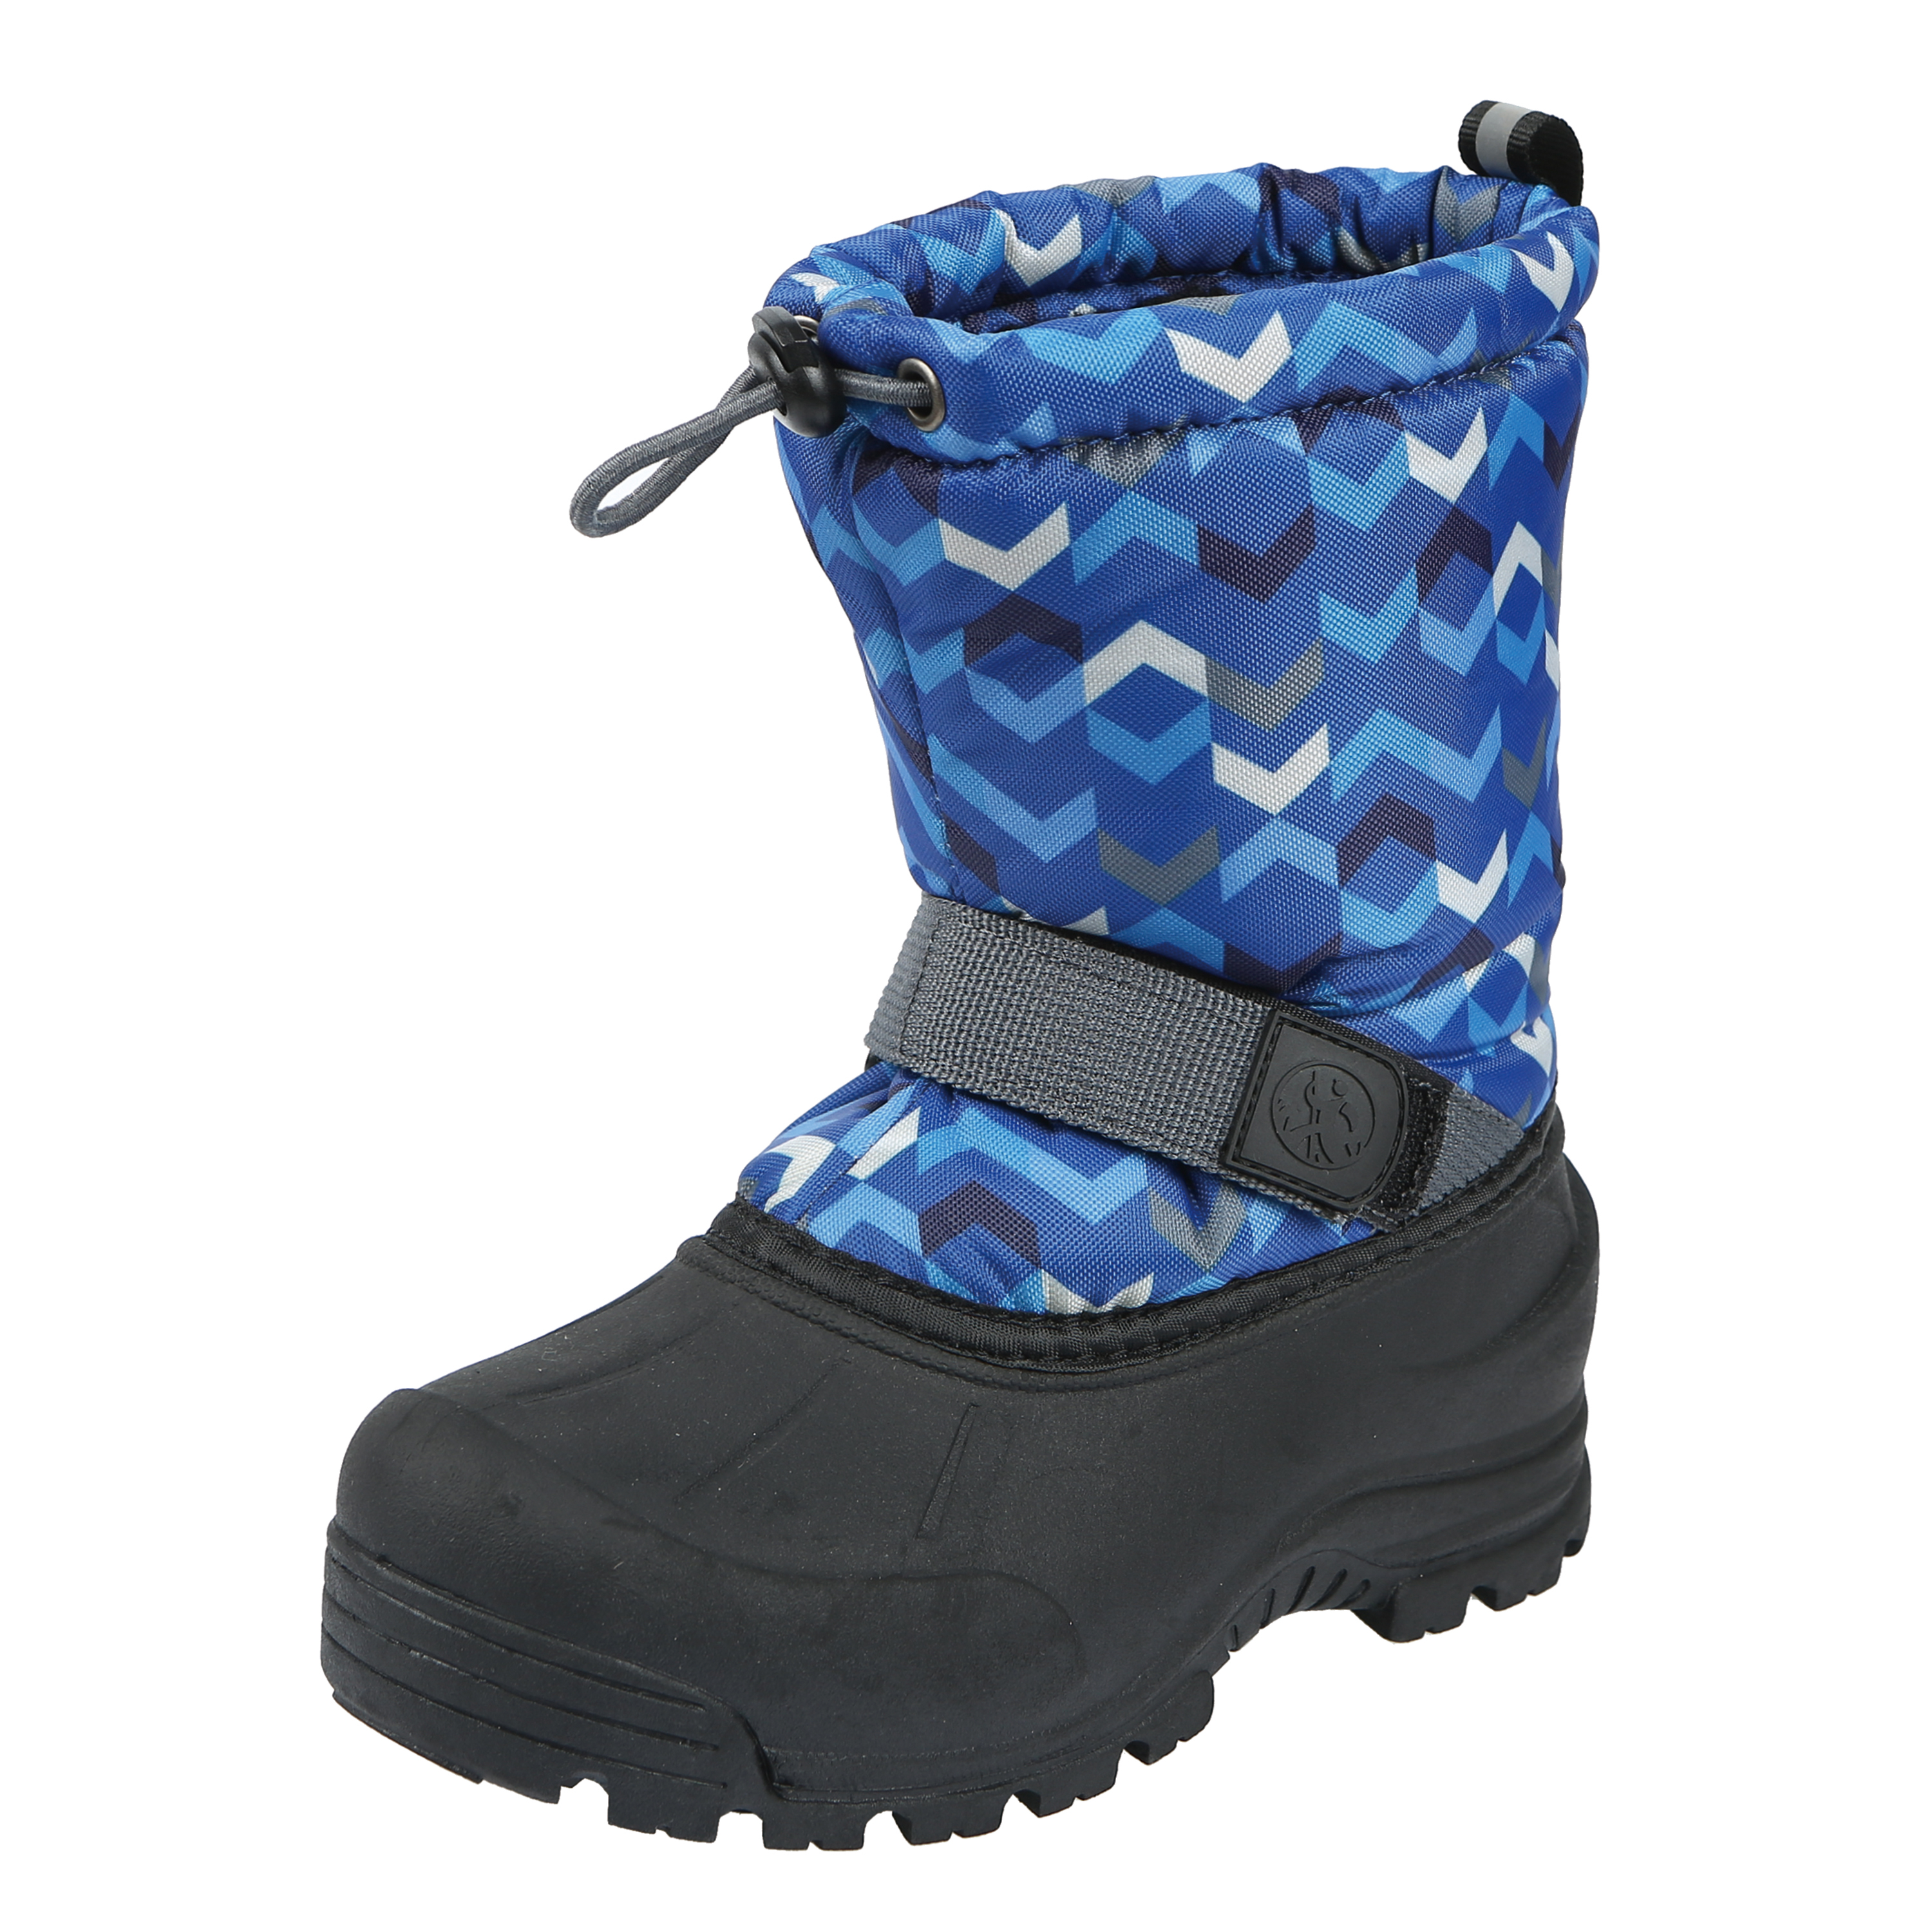 Northside Kids Frosty Insulated Winter Snow Boot Toddler/Little Kid/Big Kid